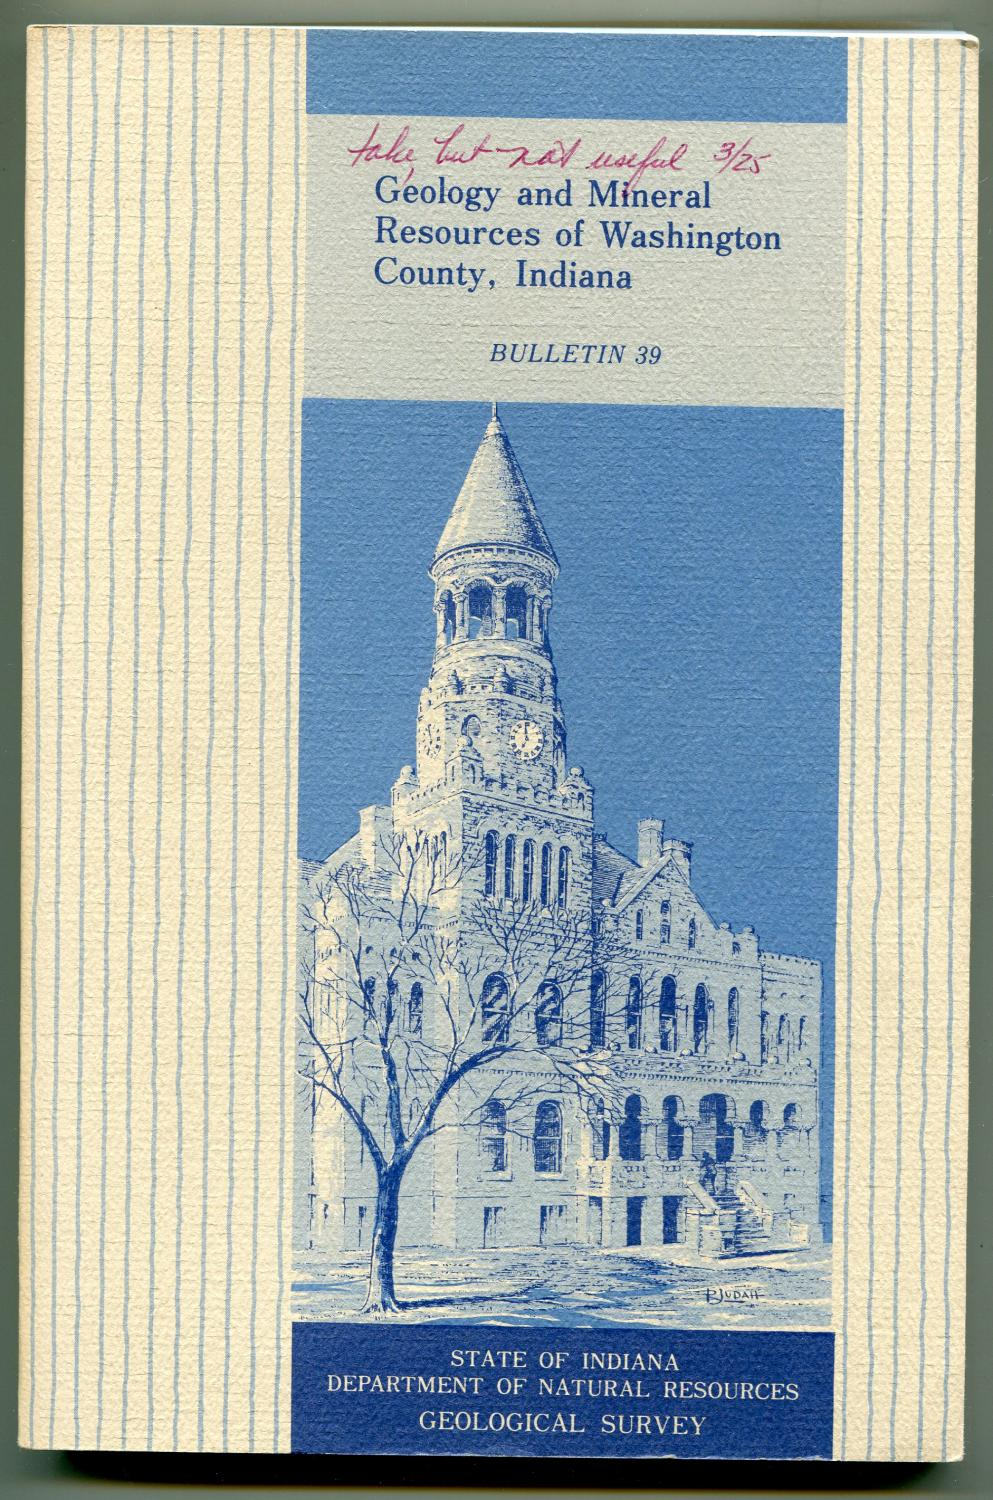 Geology and Mineral Resources of Washington County, Indiana bulletin 39: Sunderman, Jack A